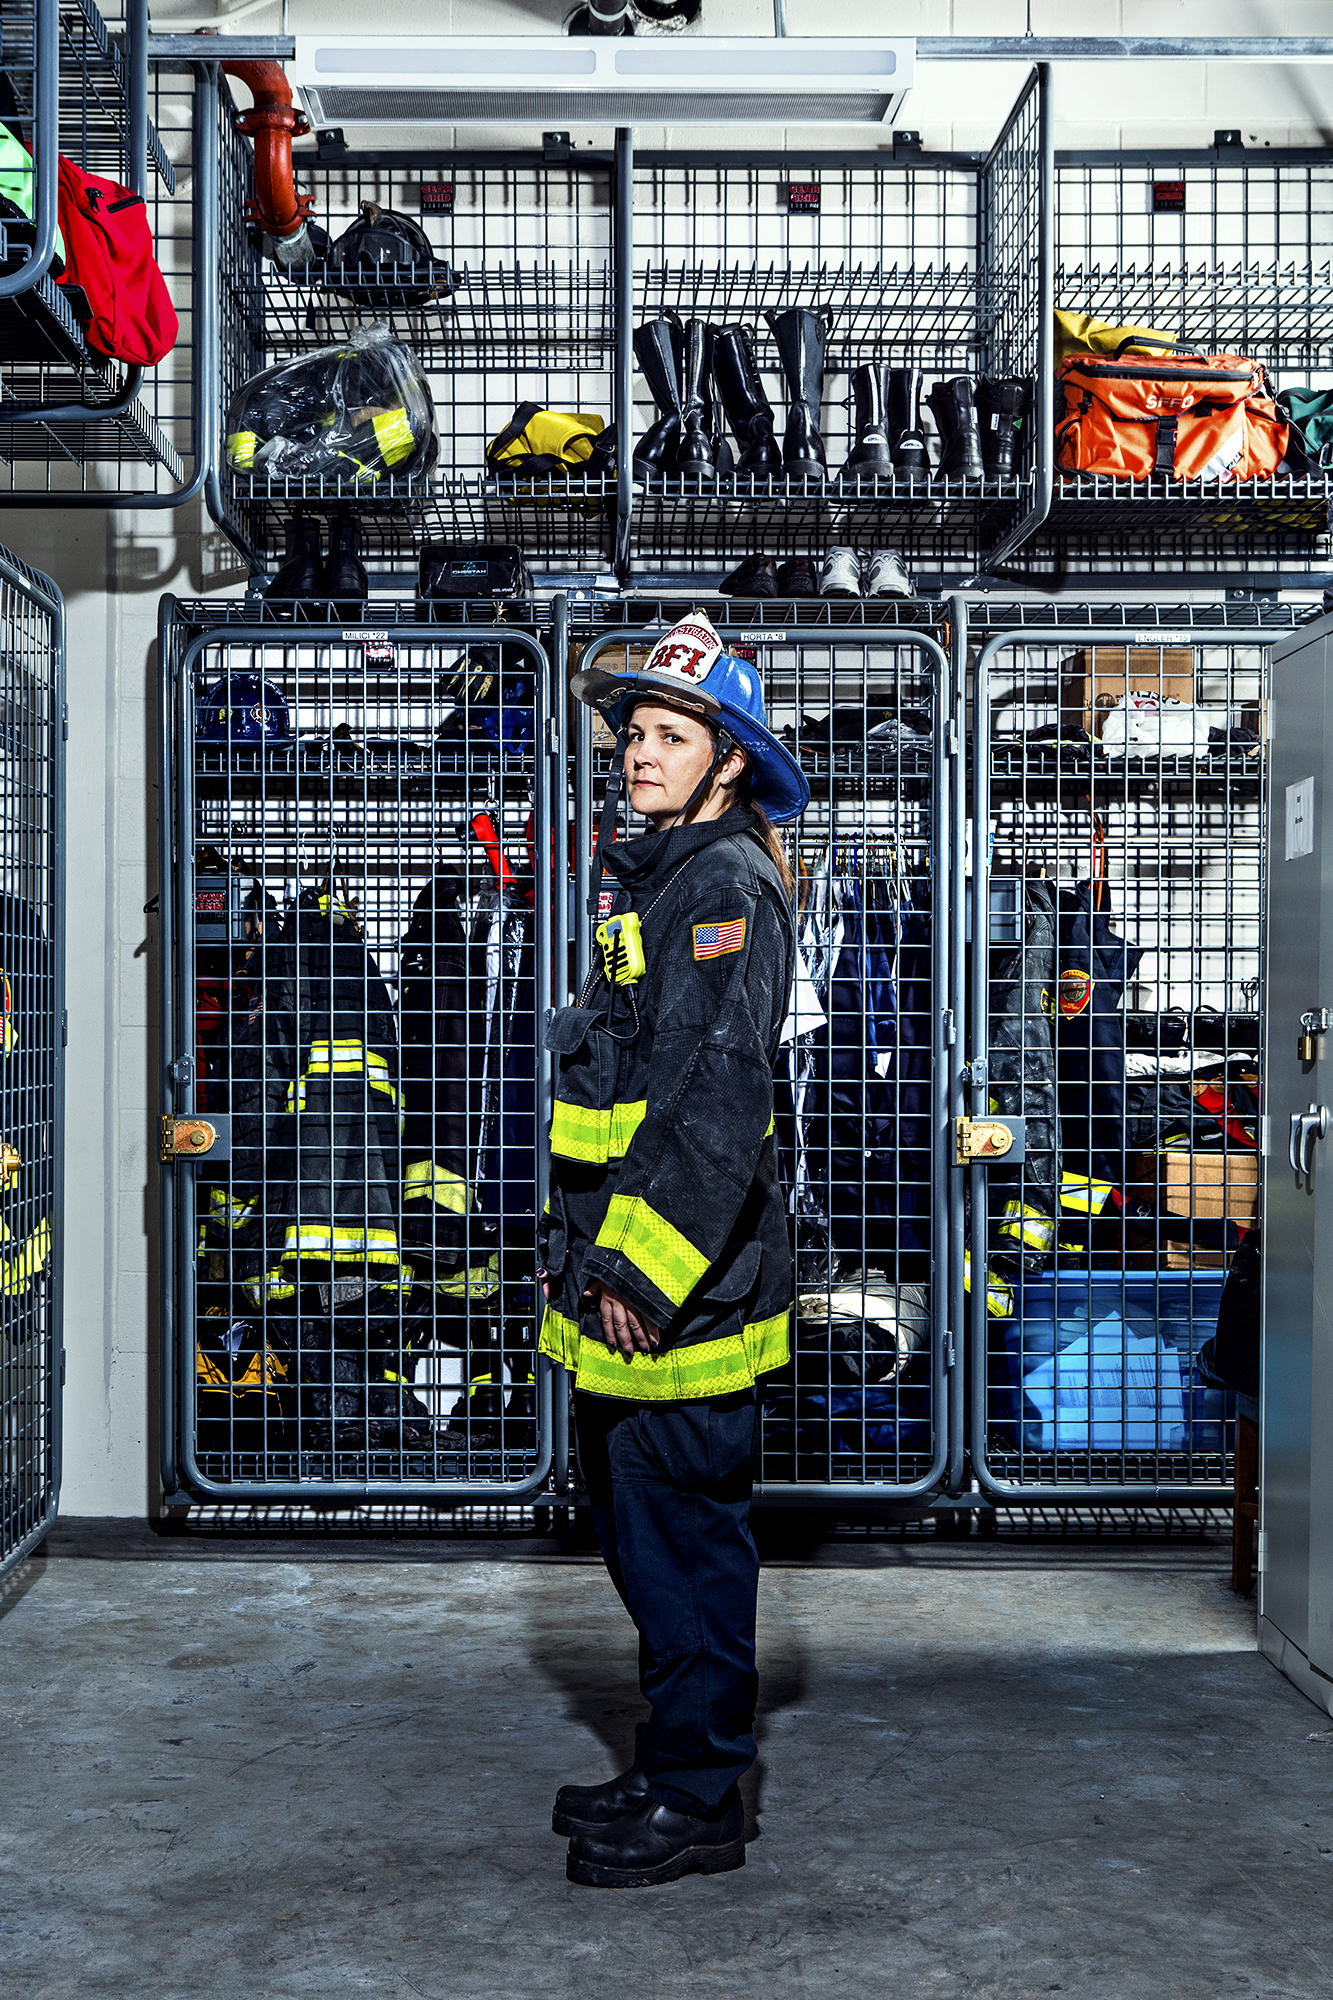 Laura Kelly- Fire Investigator, 22 years.